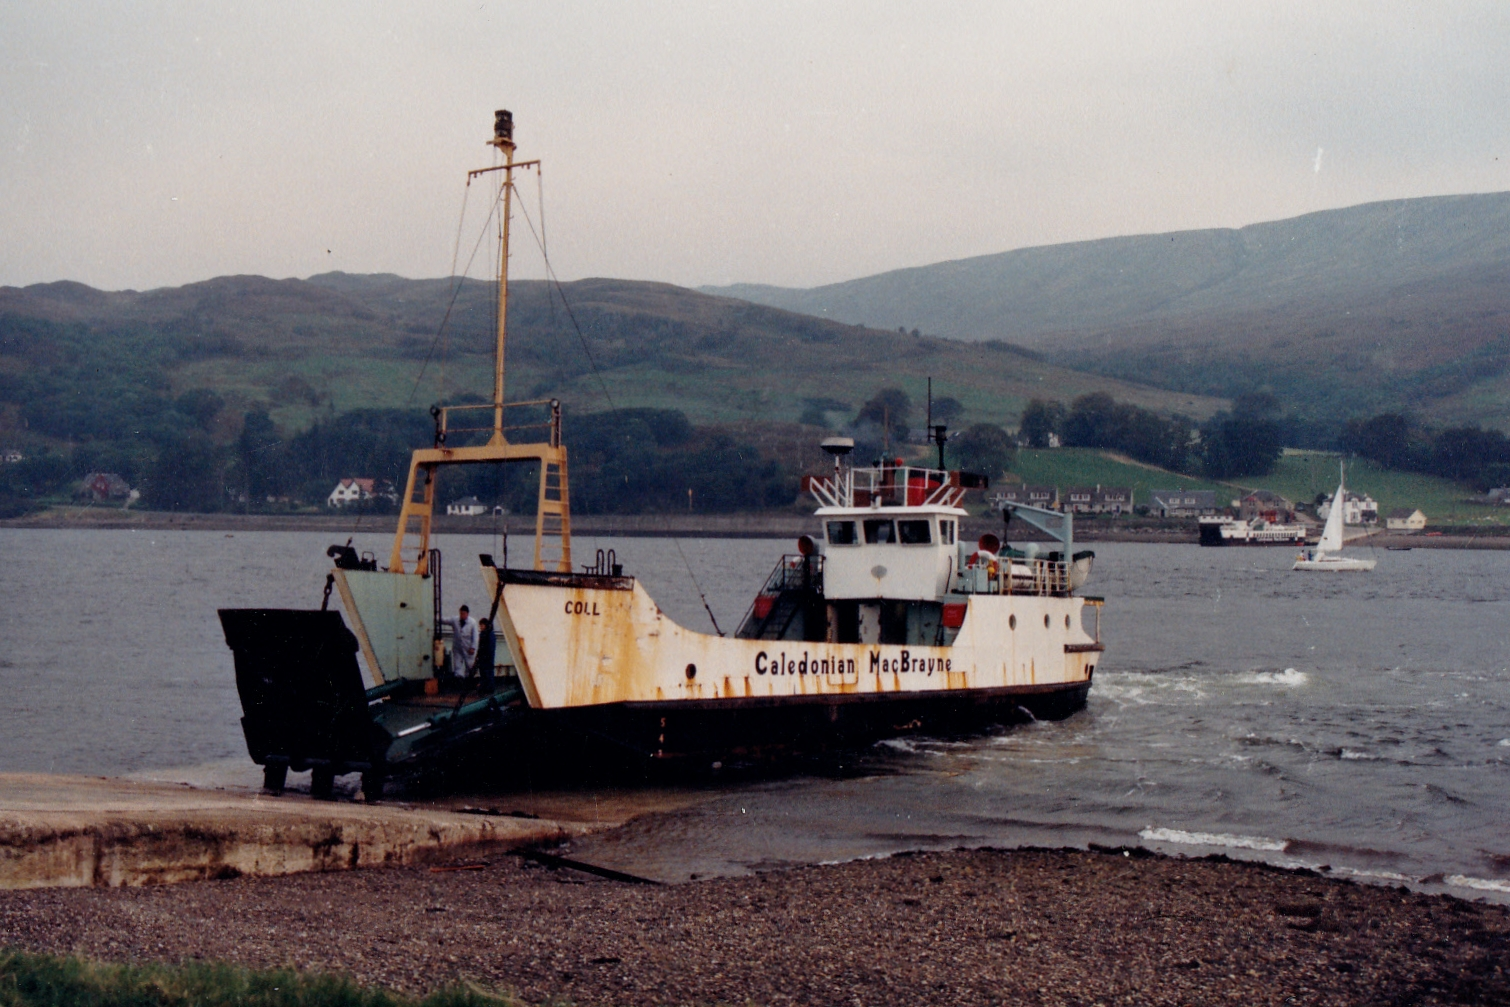 Loch Riddon at Colintraive with Coll at Rhubodach (Jim Aikman Smith)